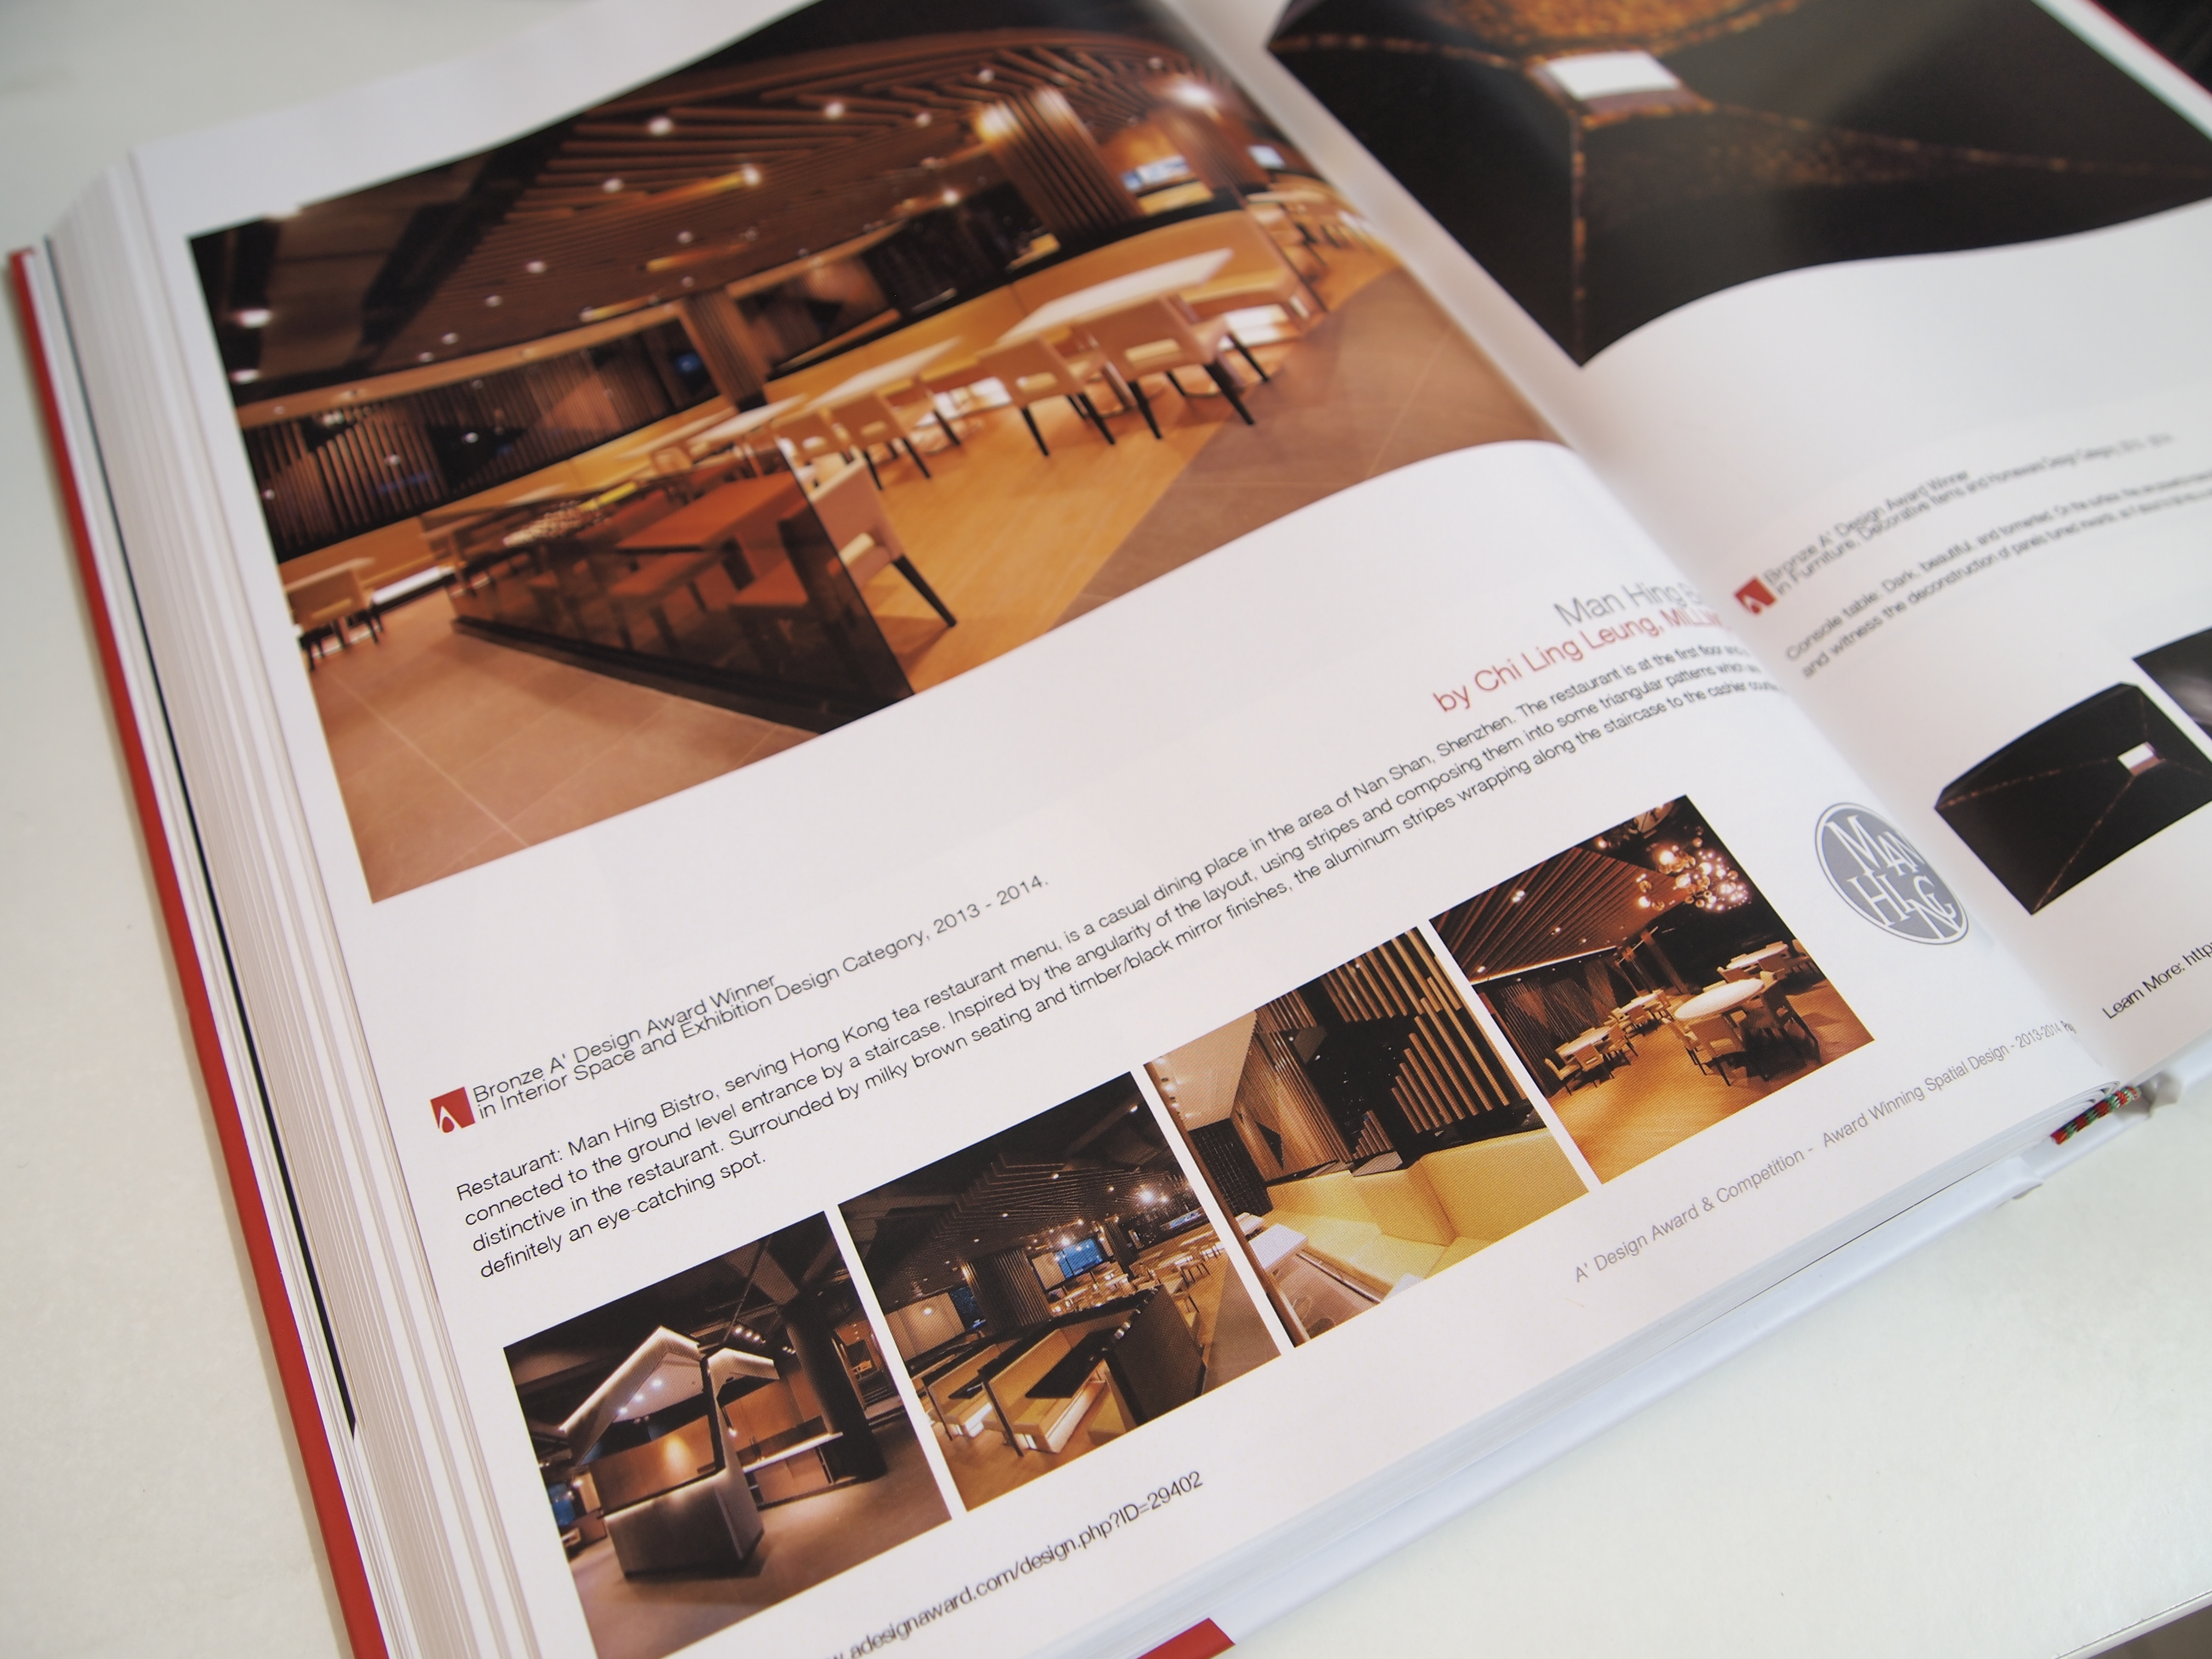 Our Company Has Been Awarded With The A Design Award